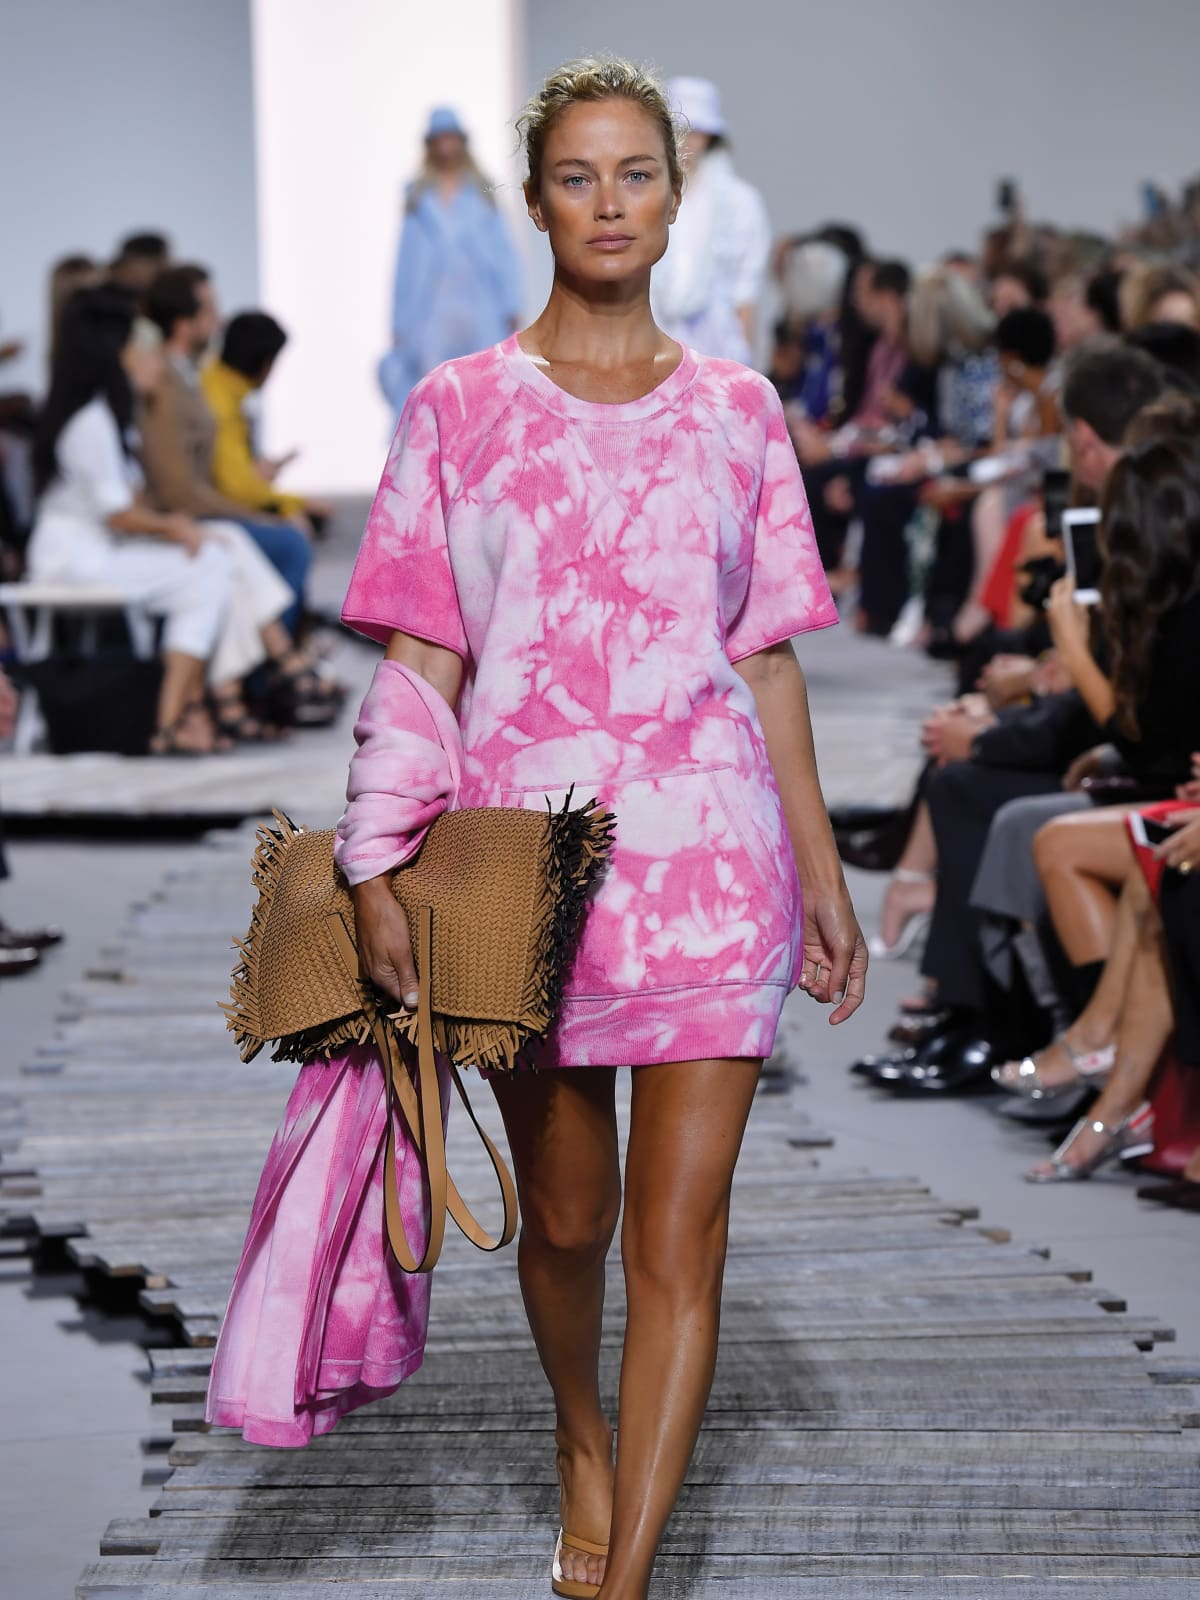 Michael Kors beach party collection mixes evening gowns and flip ...